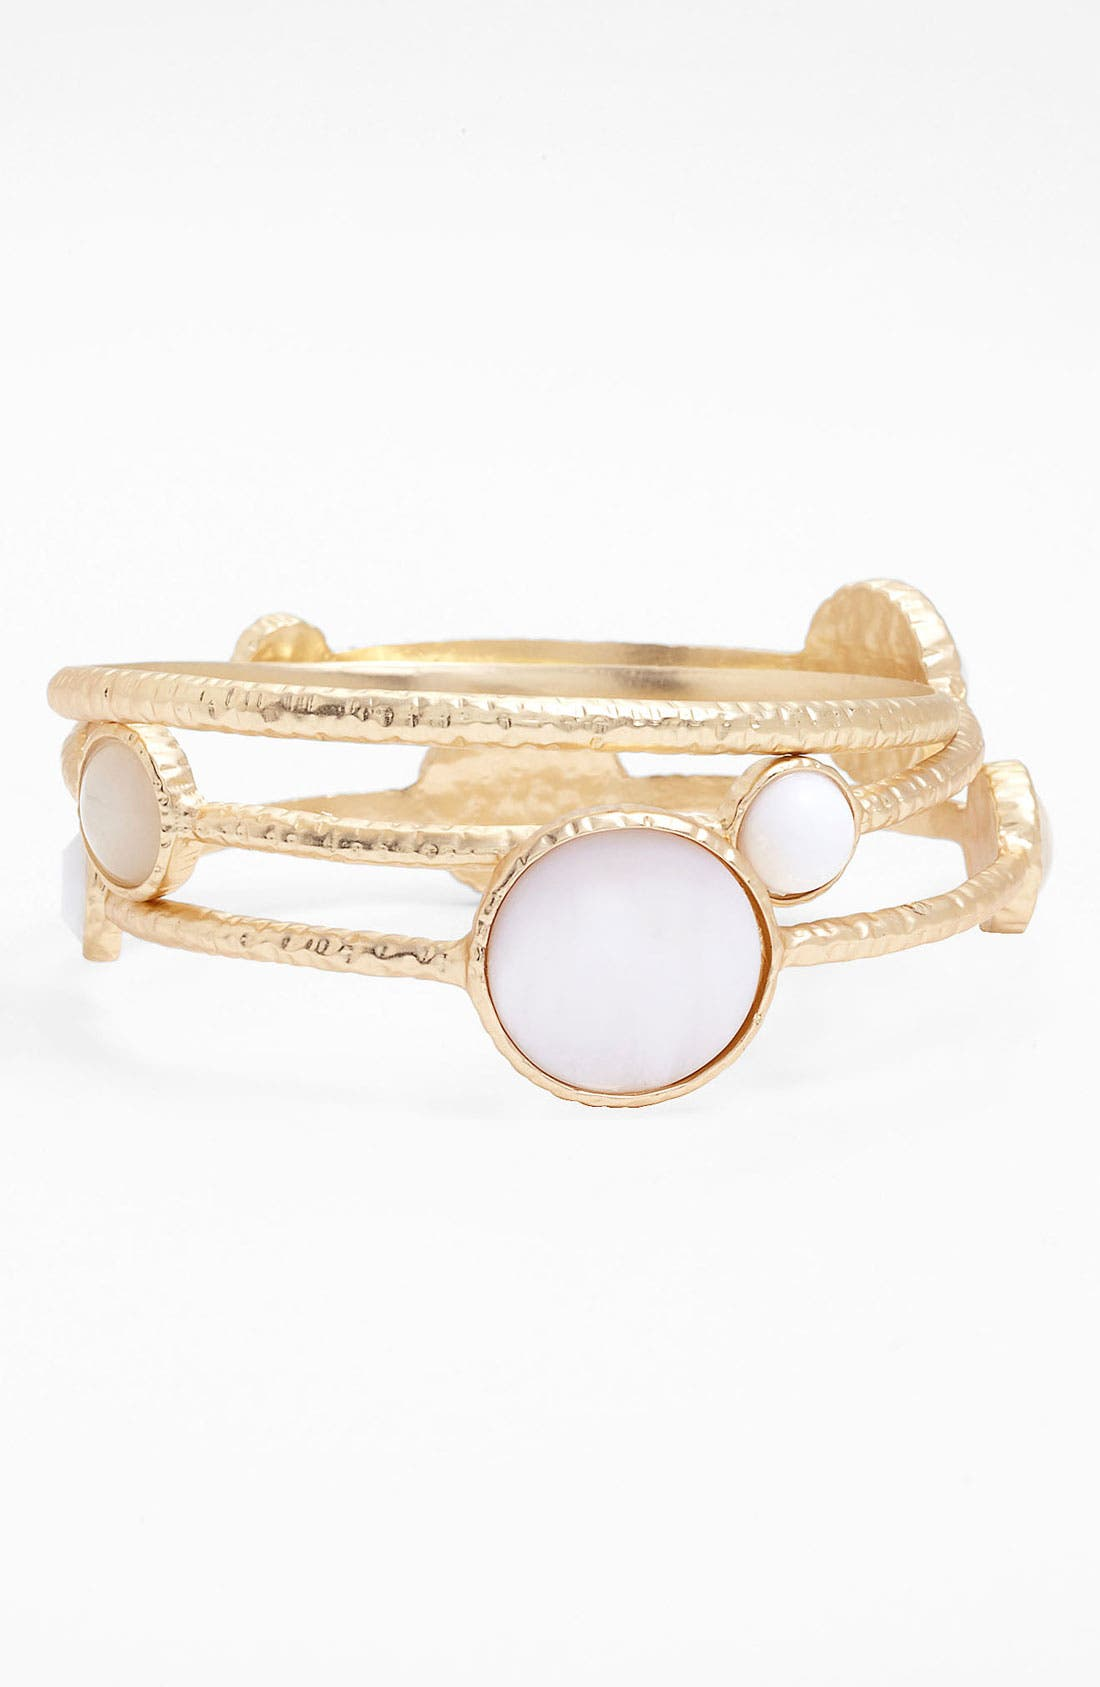 Main Image - Nordstrom 'Santorini' Station Bangles (Set of 3)